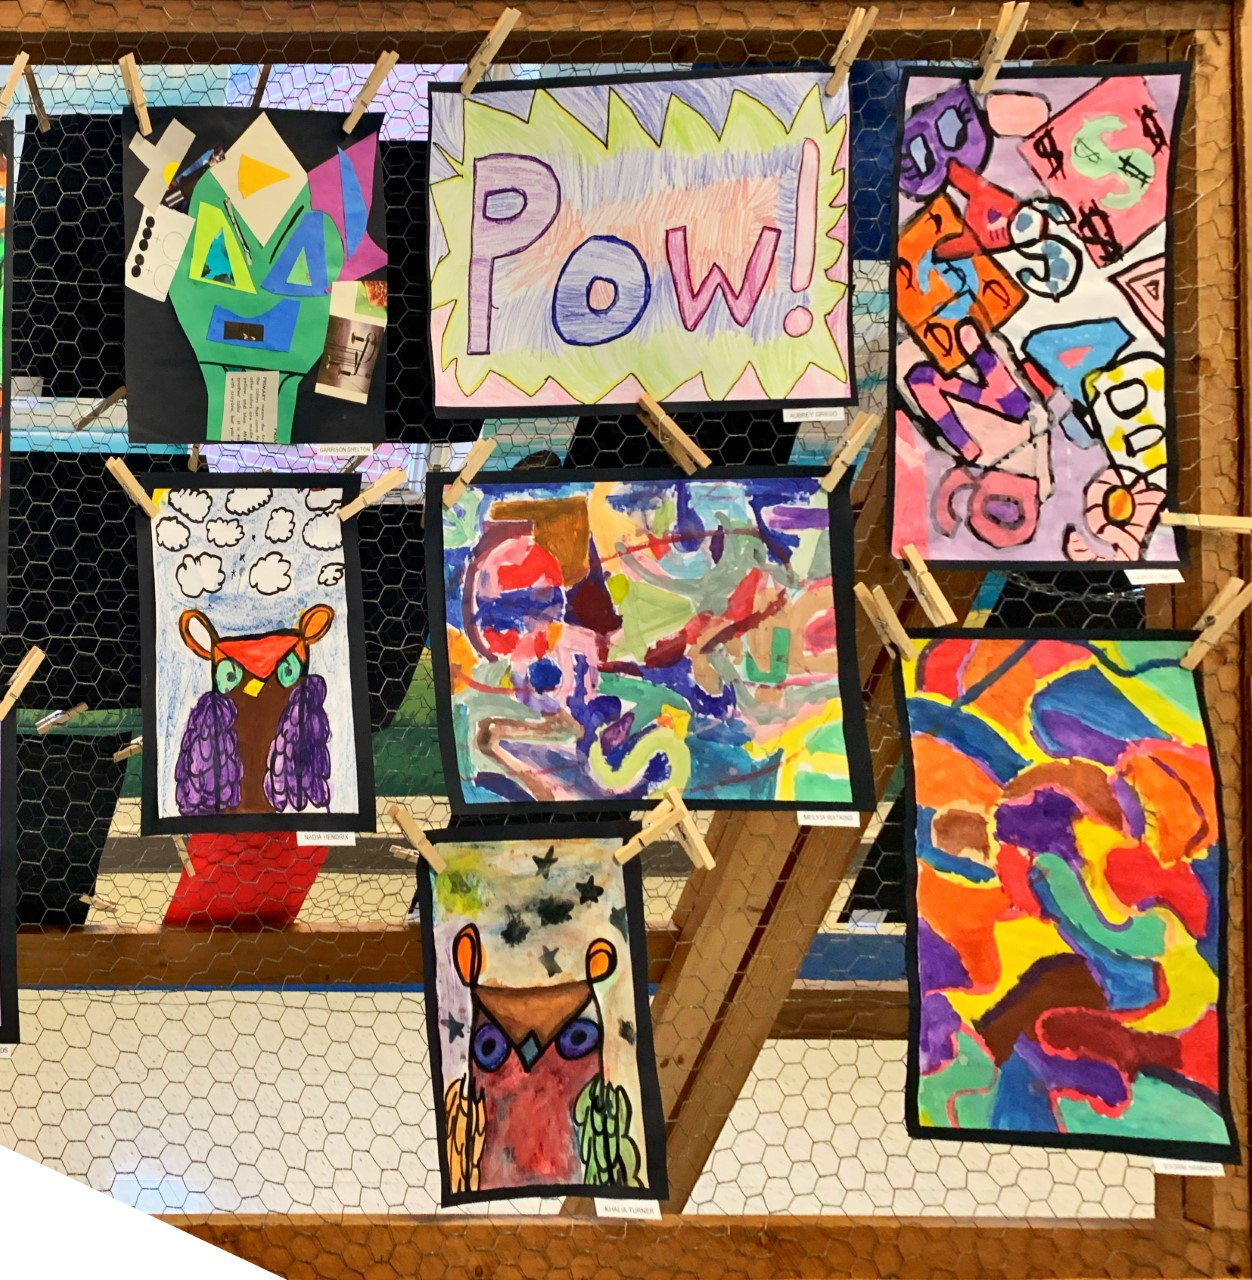 4th and 5th art show